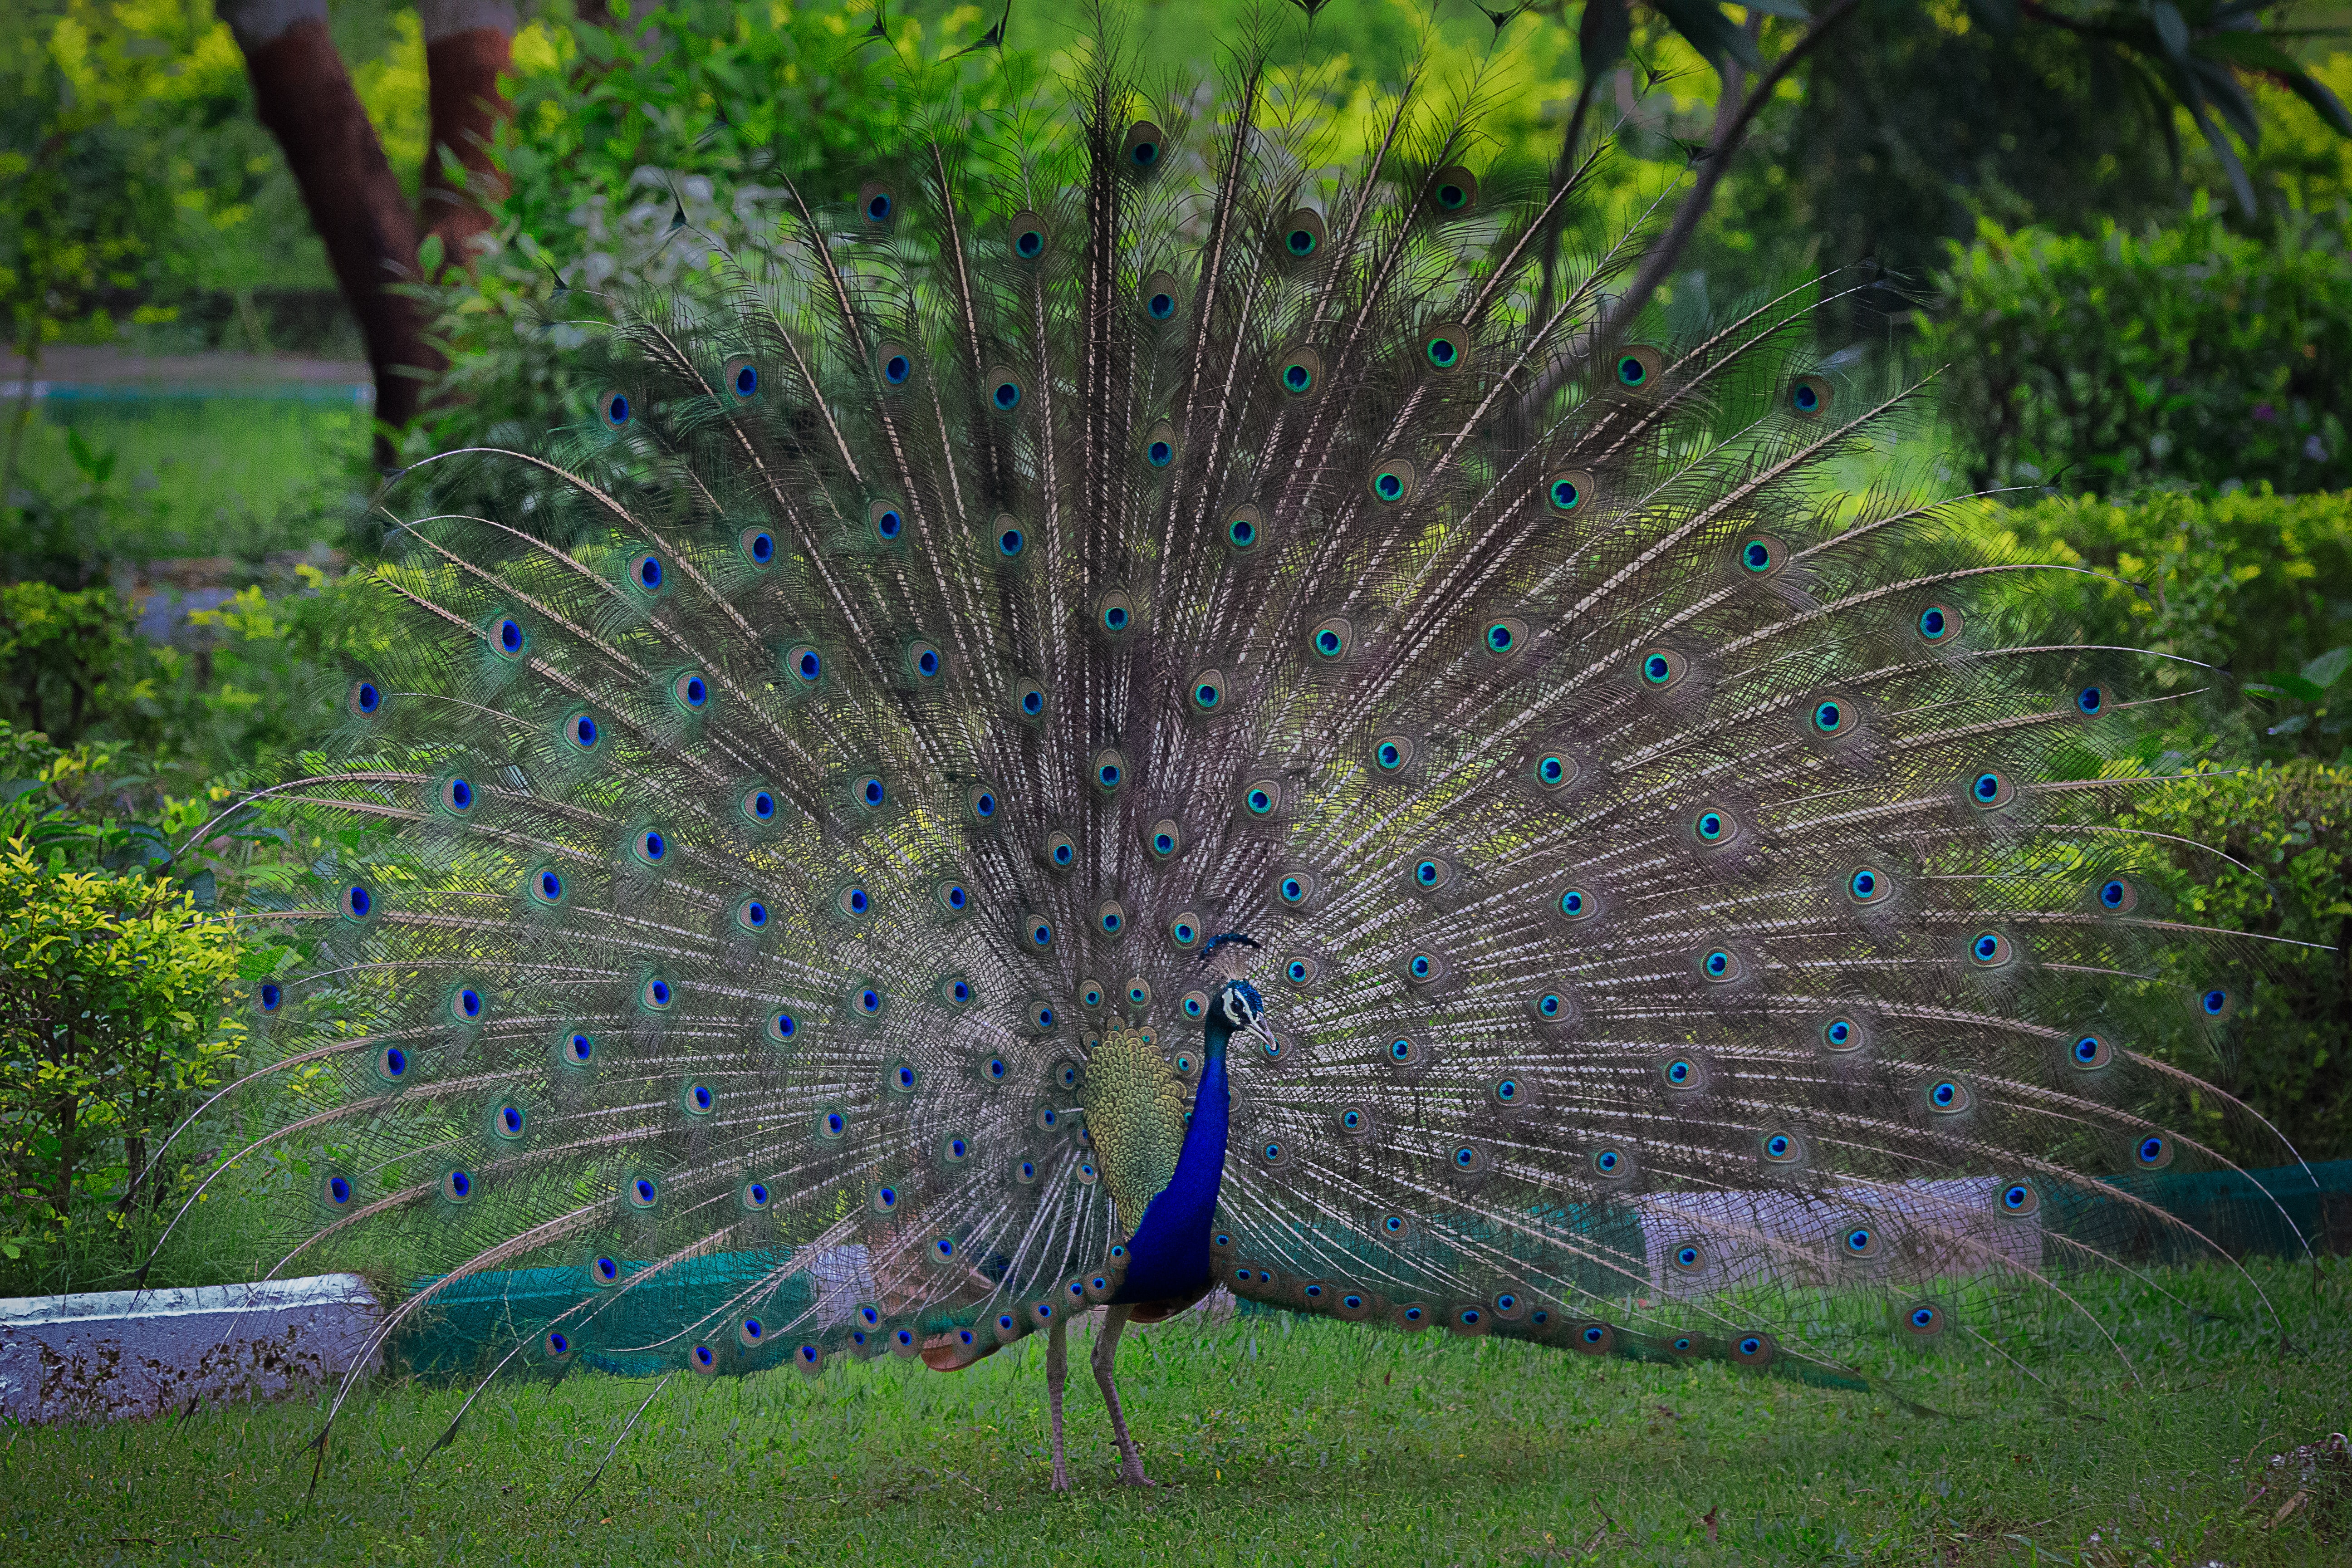 A graceful walk like that of the peacock